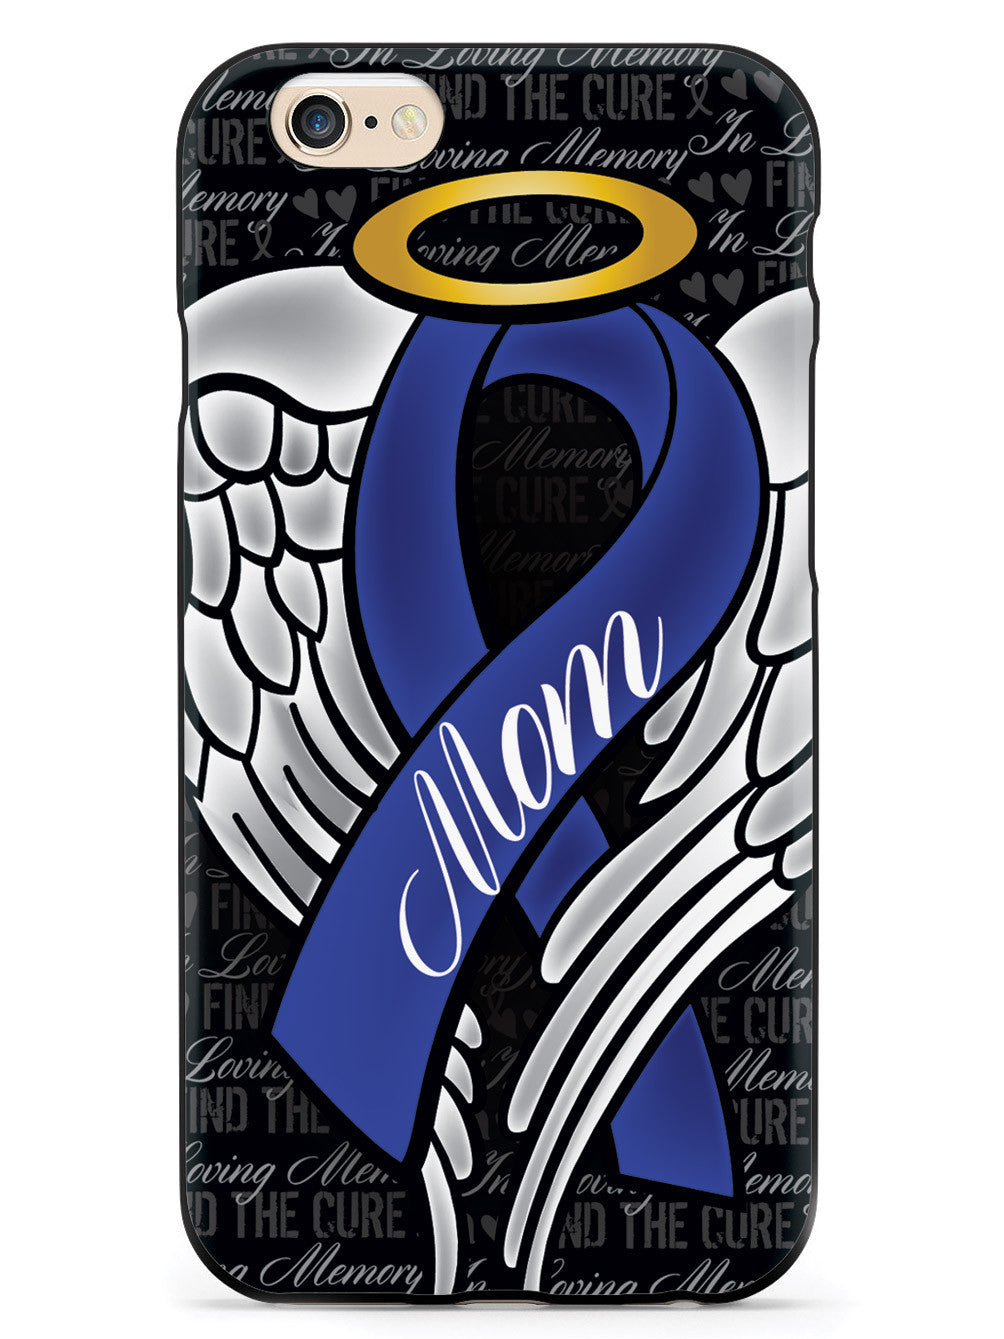 In Loving Memory of My Mom - Blue Ribbon Case